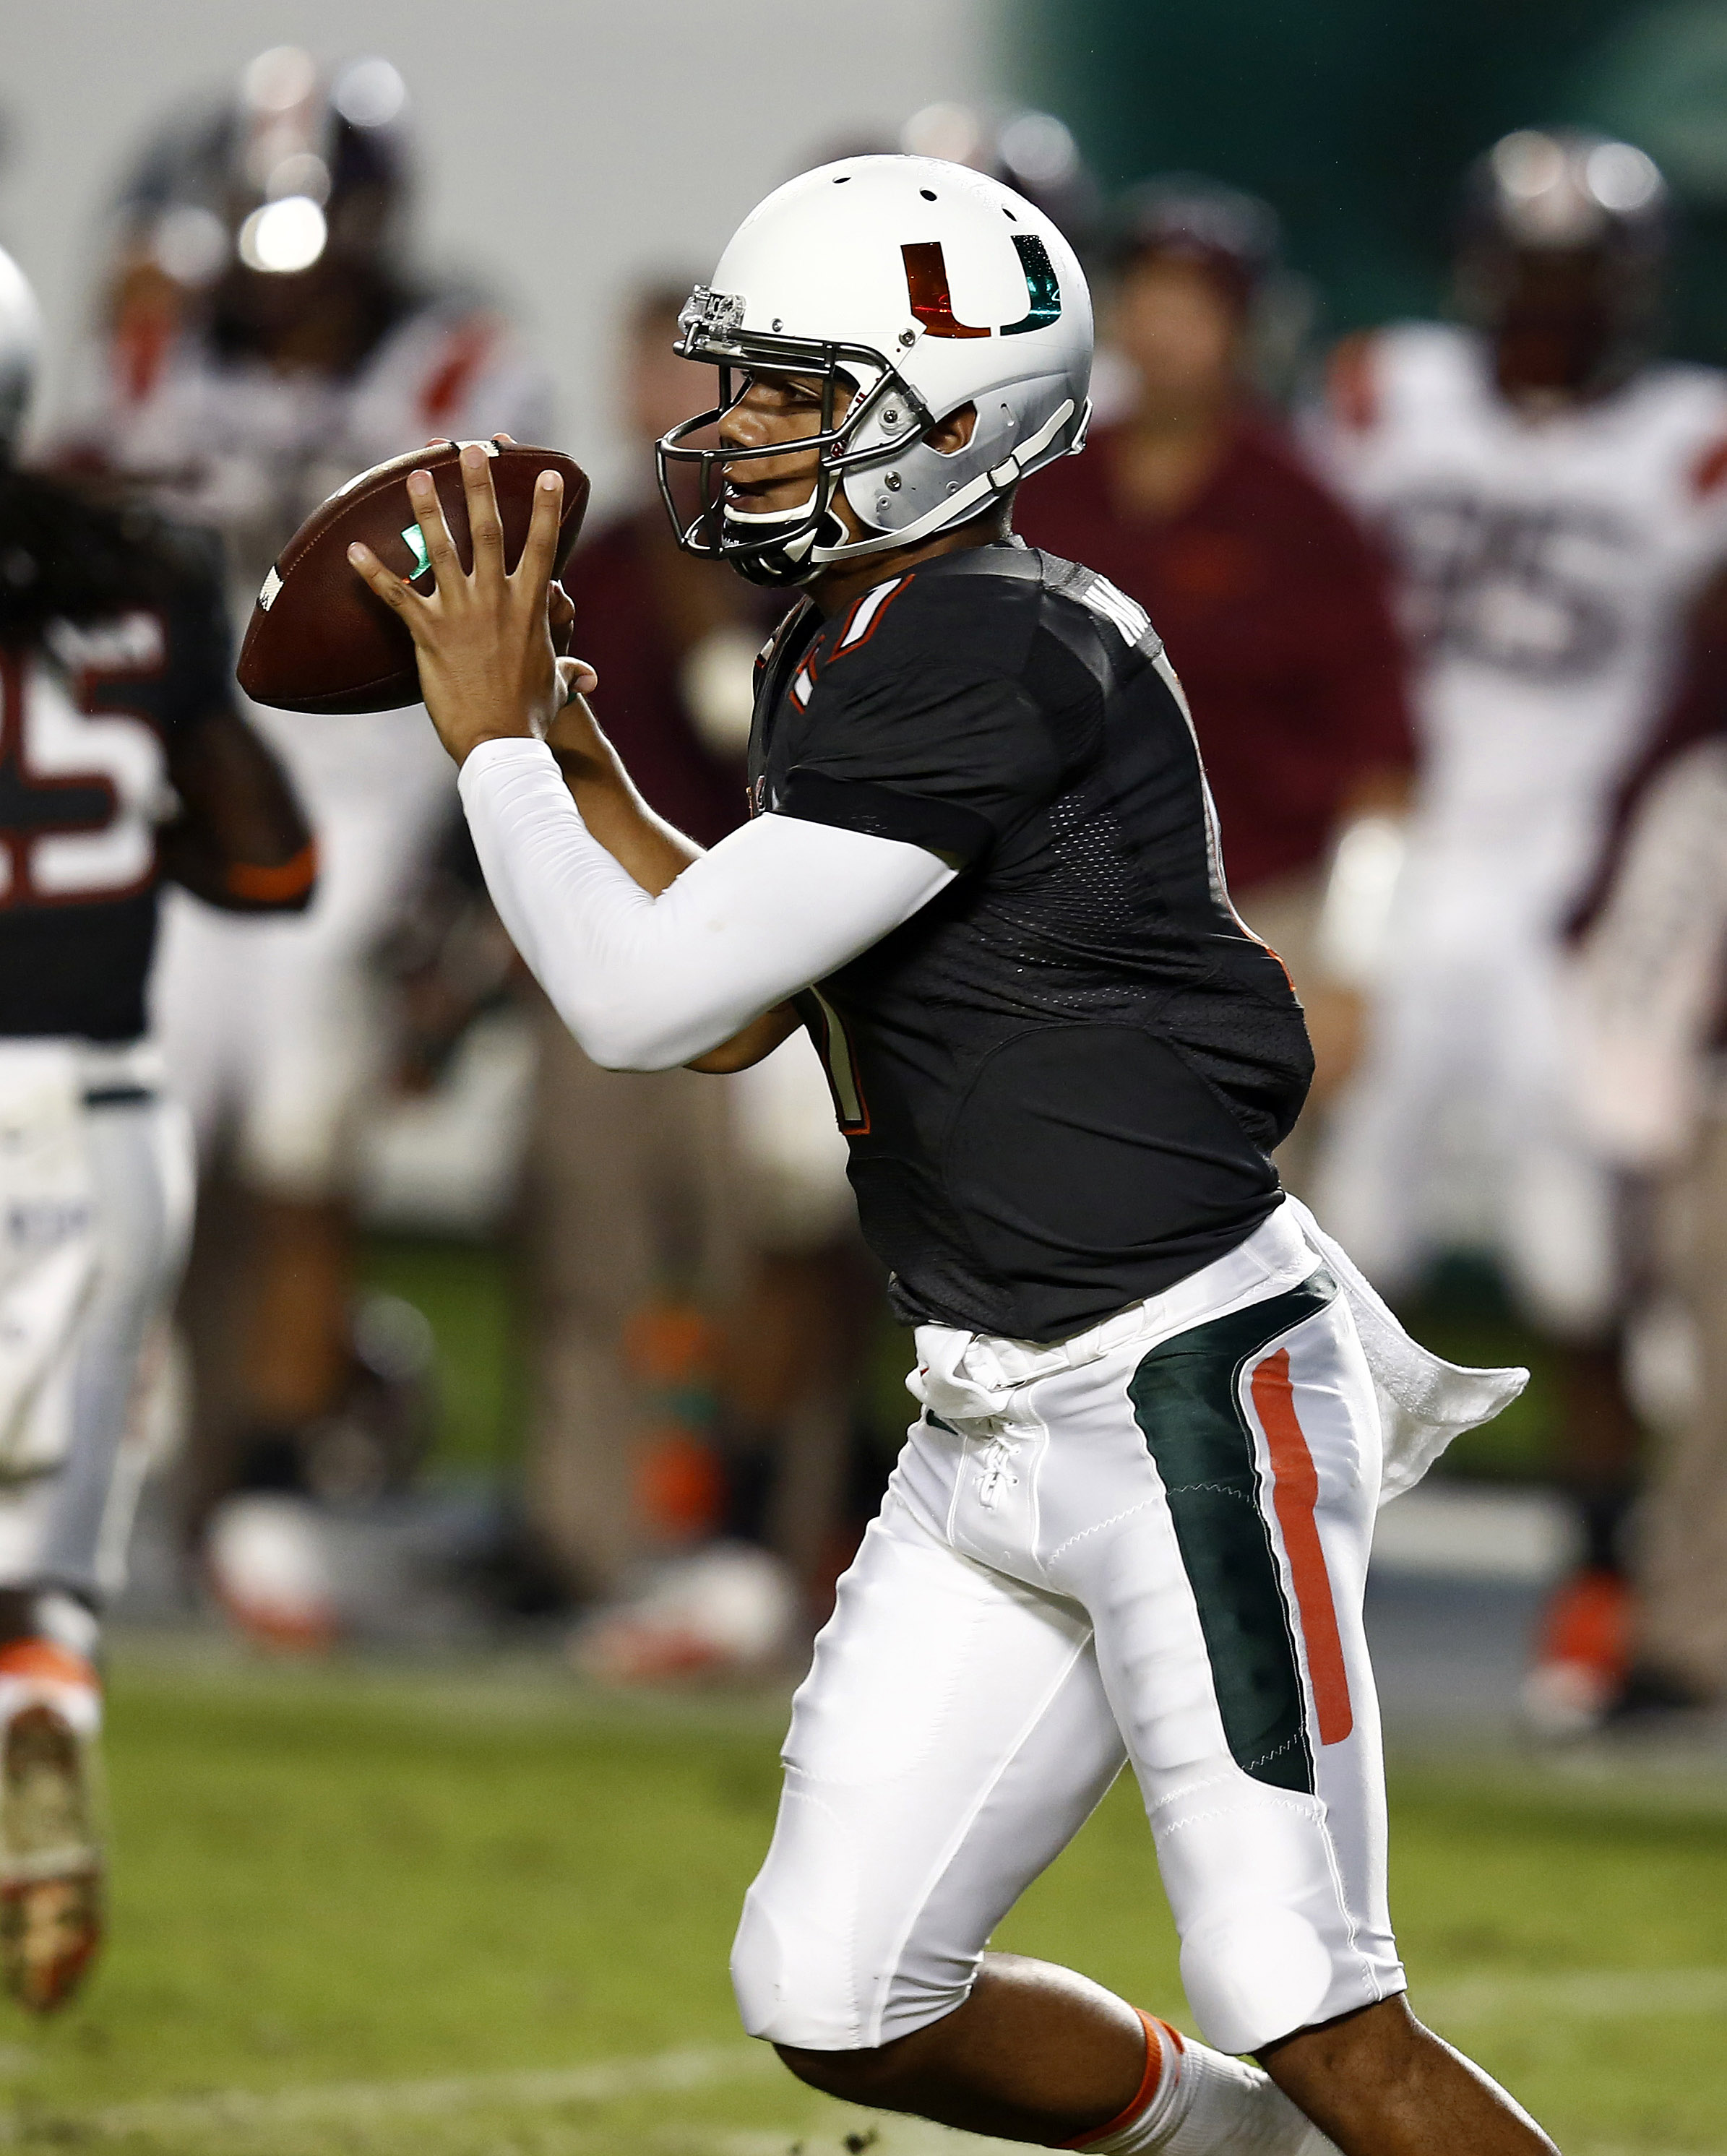 Nov 9, 2013; Miami Gardens, FL, USA;  Miami Hurricanes quarterback Stephen Morris (17) drops back to pass in the second quarter of a game against the Virginia Tech Hokies at Sun Life Stadium. Mandatory Credit: Robert Mayer-USA TODAY Sports